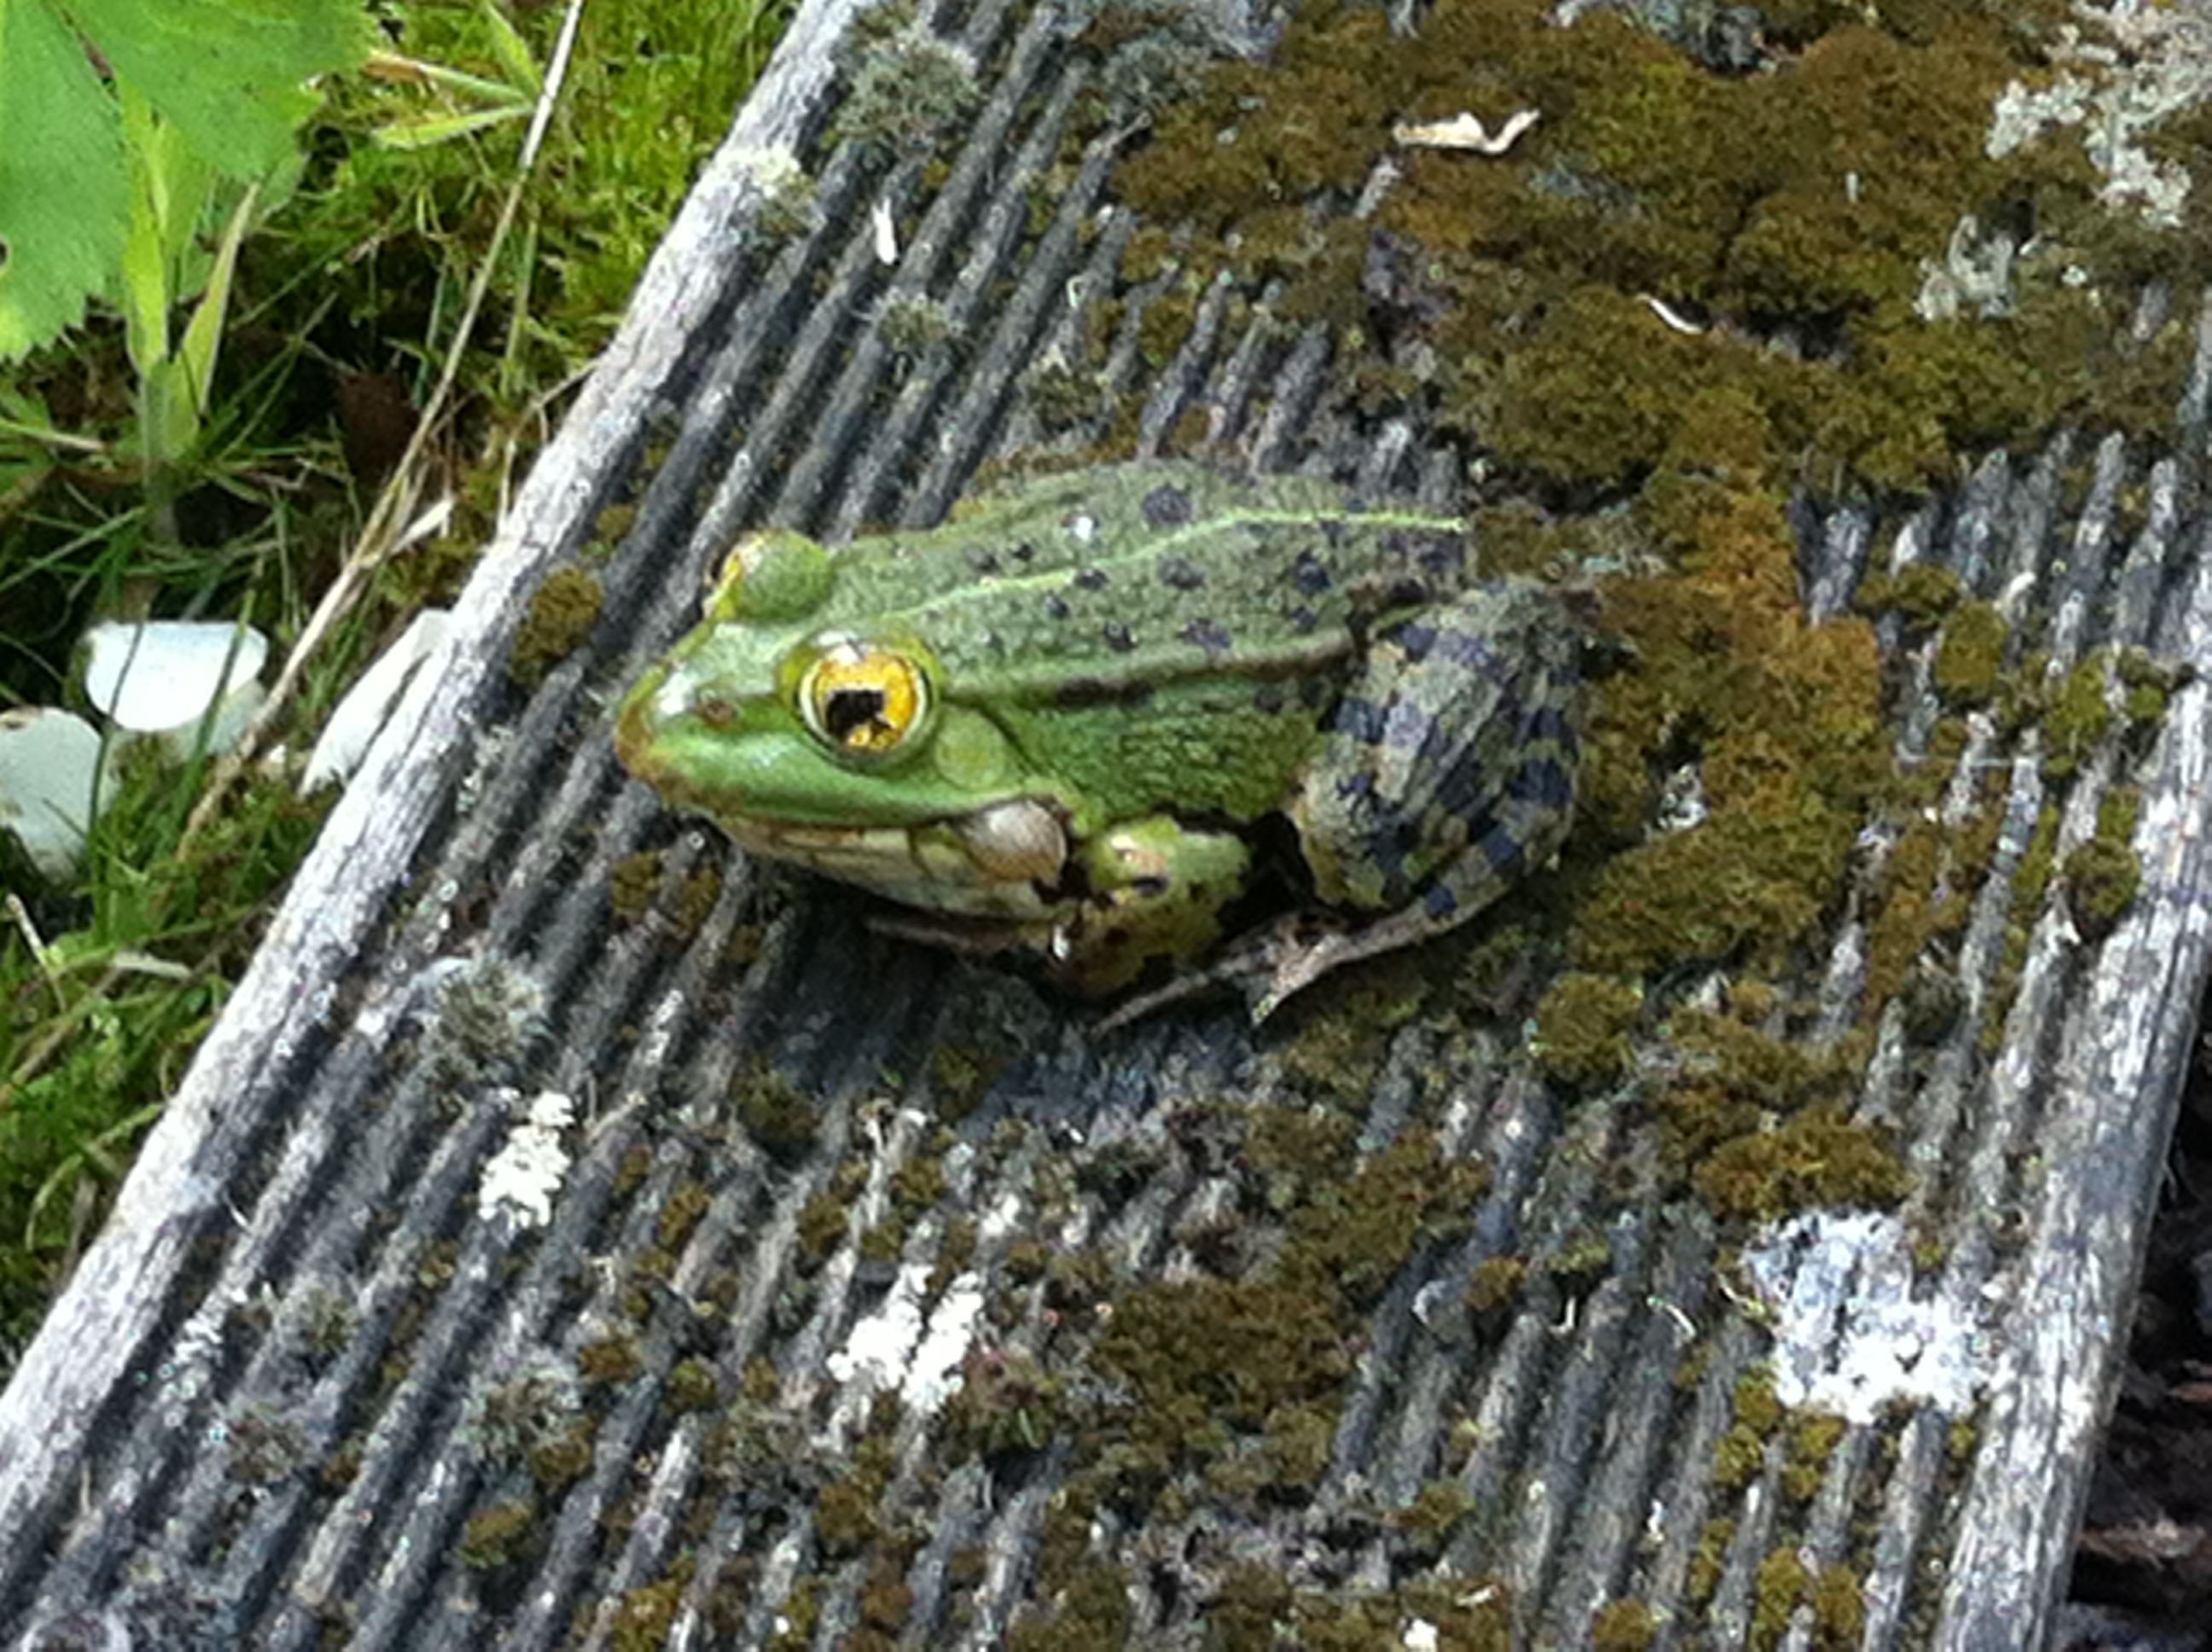 One of my frogs sunbathing next to the pond